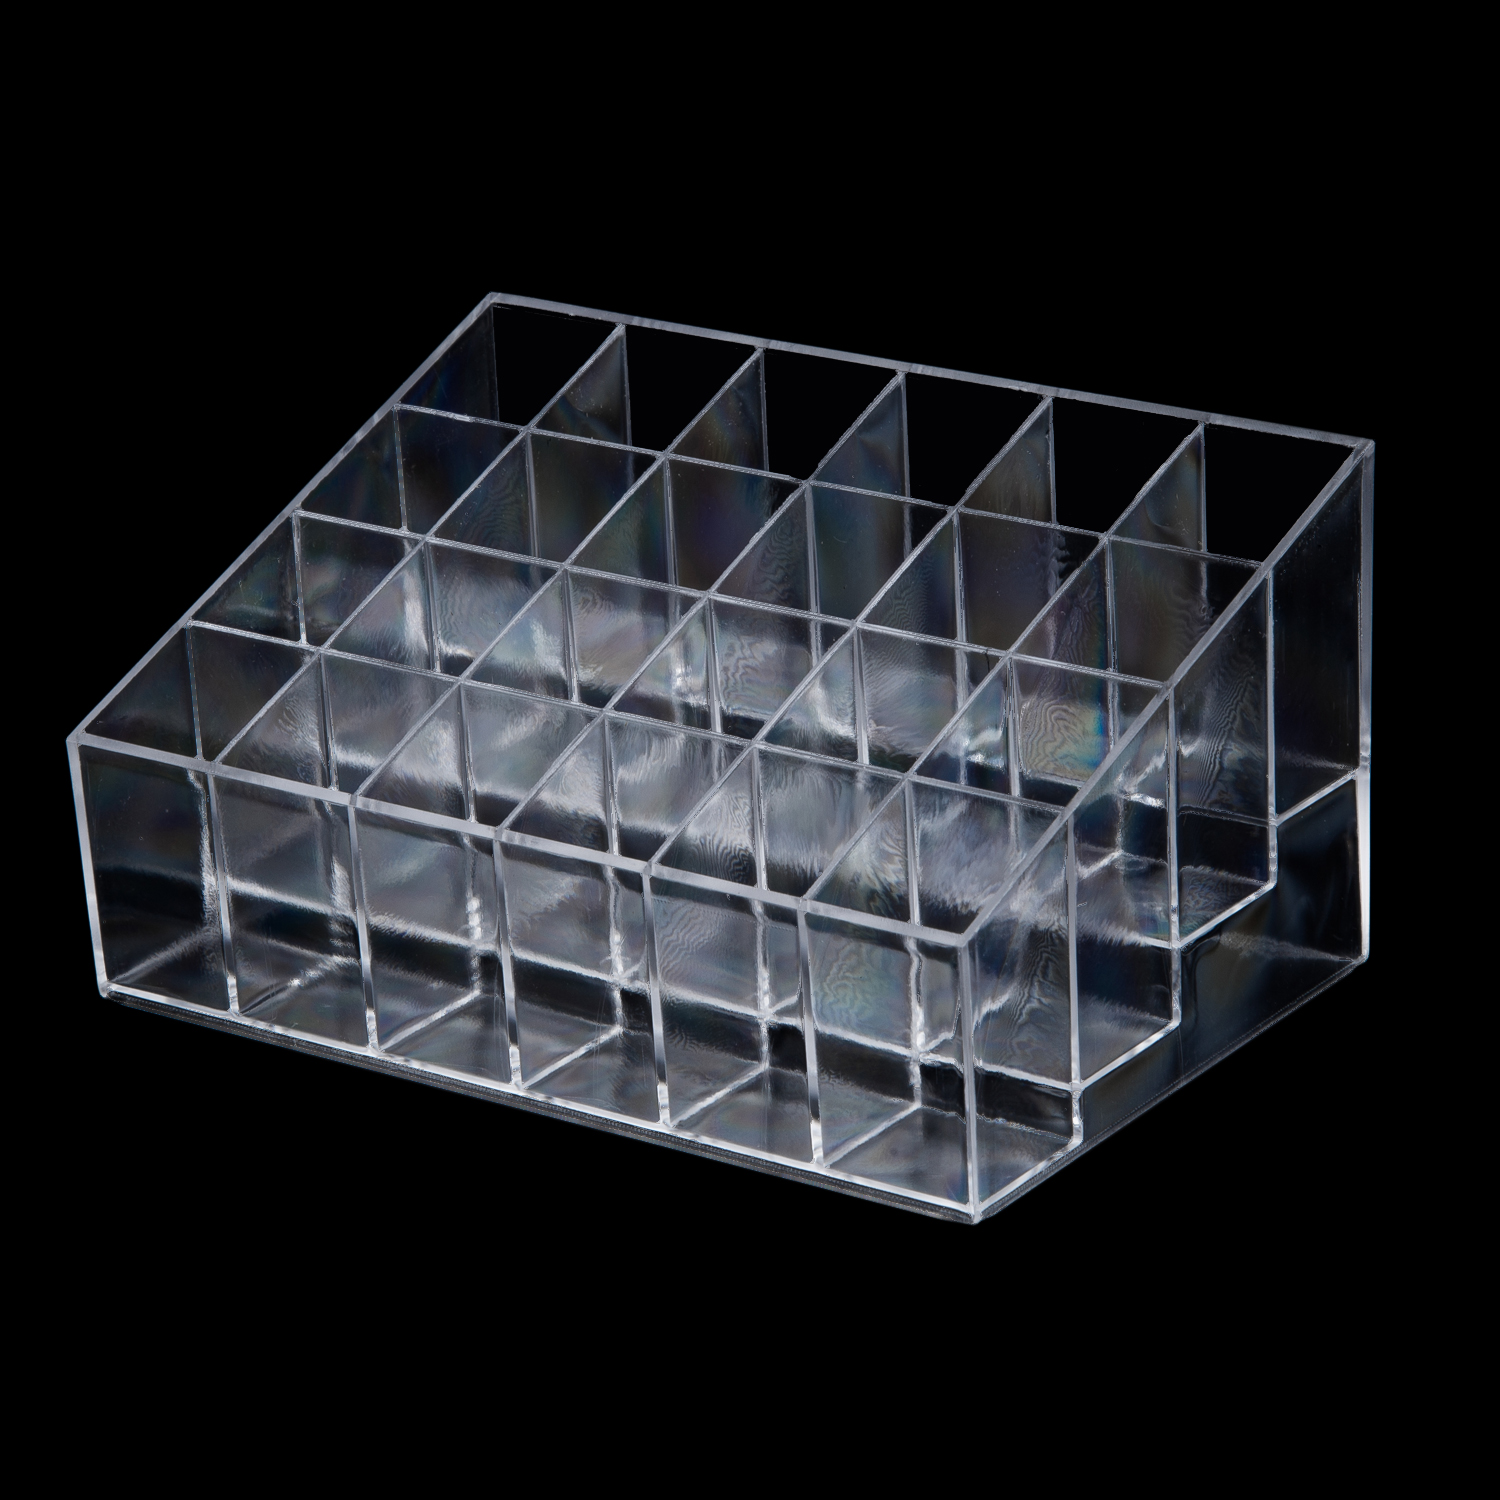 NOCM-Clear Transparent arylic Trapezoid Lipstick Holder Cosmetic Organizer/display/holder Organizer Stand ...